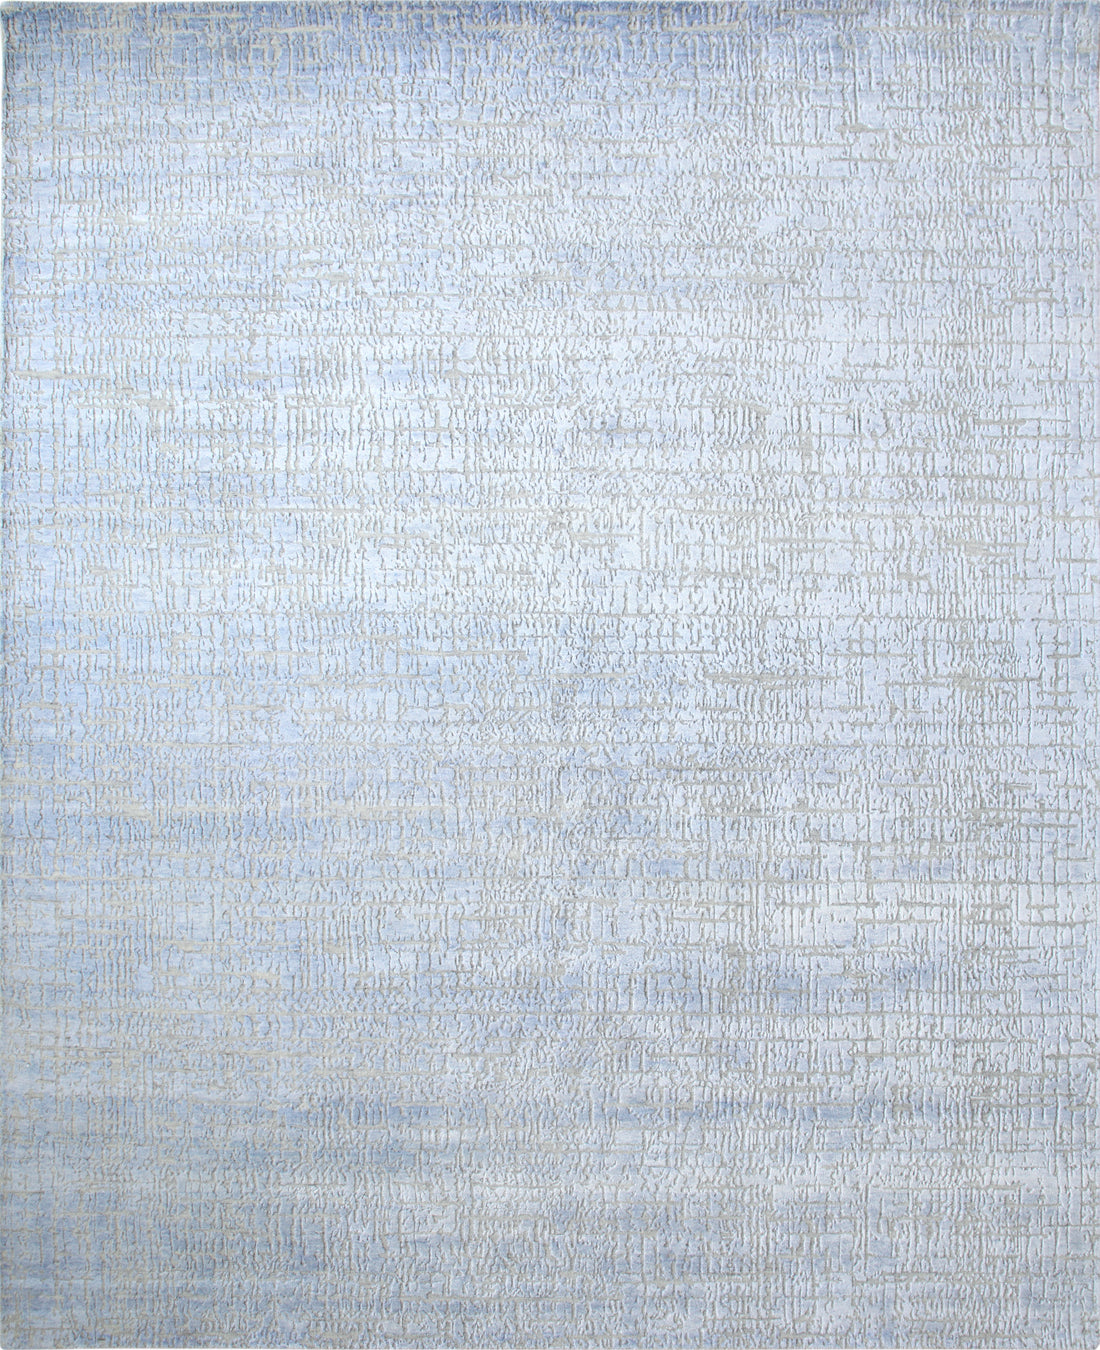 Solo Rugs Erase M8062-75 Gray Area Rug main image